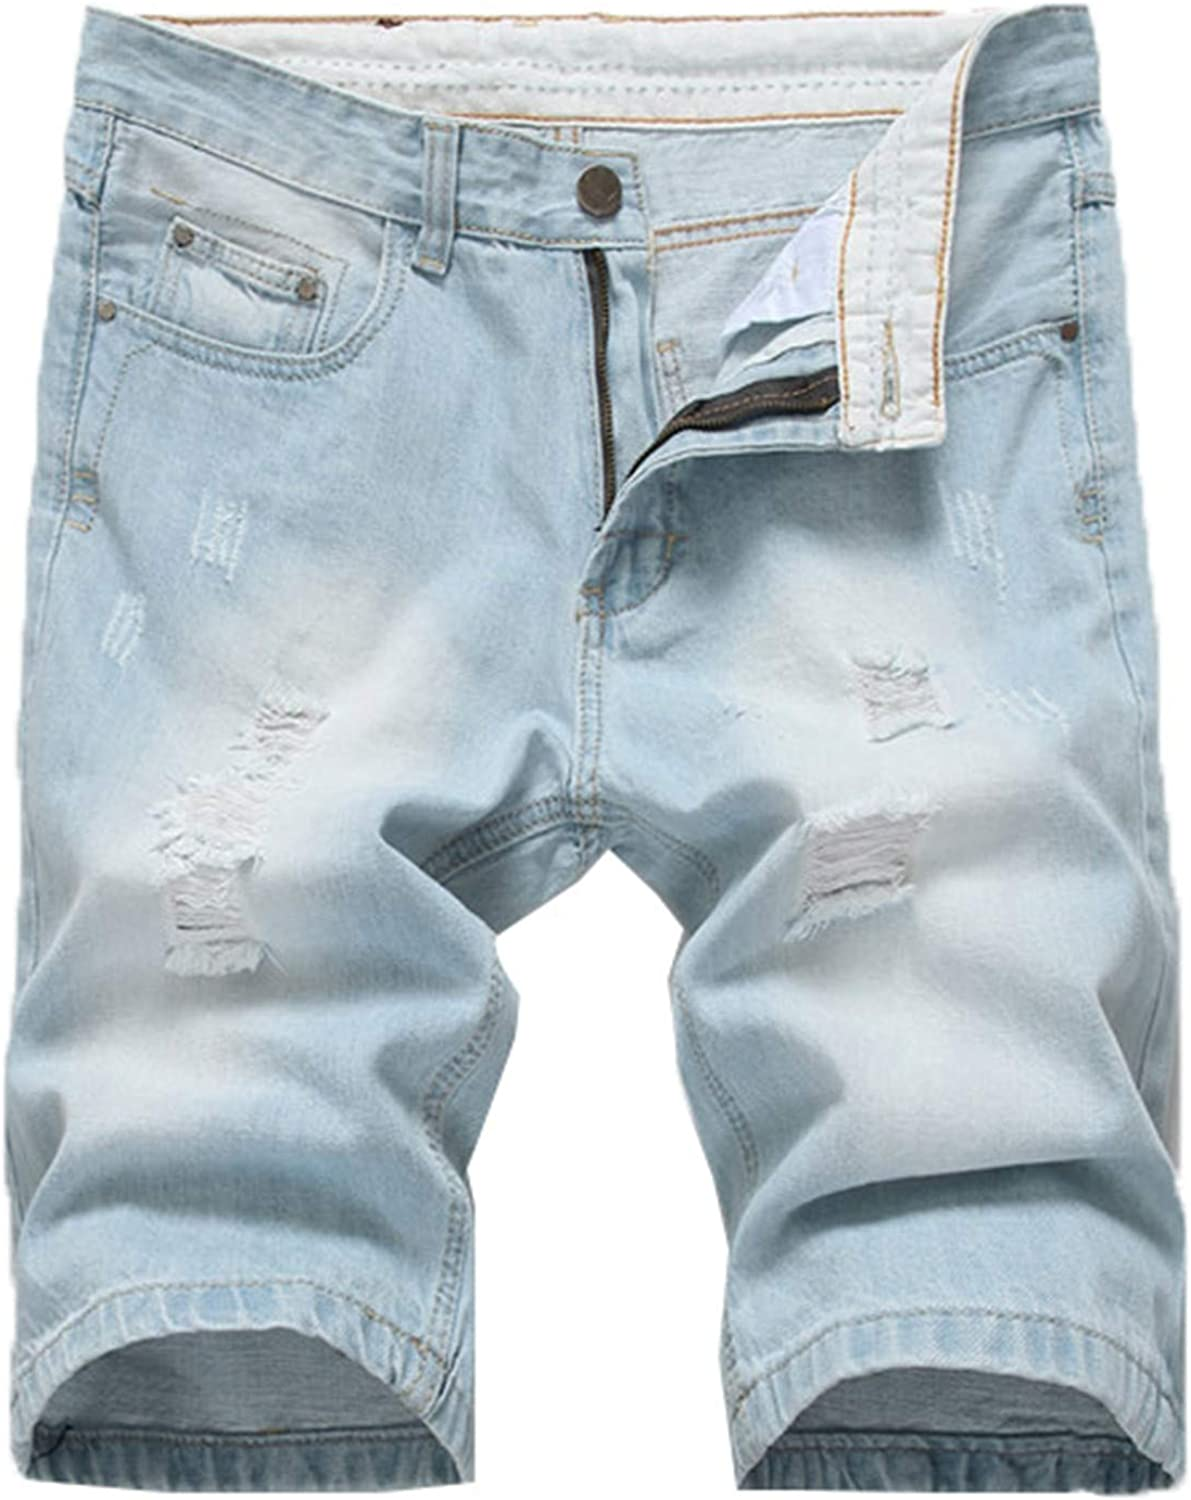 Yiqinyuan Summer Casual Ripped Shorts Jeans Men Wash Cotton Distressed Straight Mens Denim Shorts Jeans Shorts